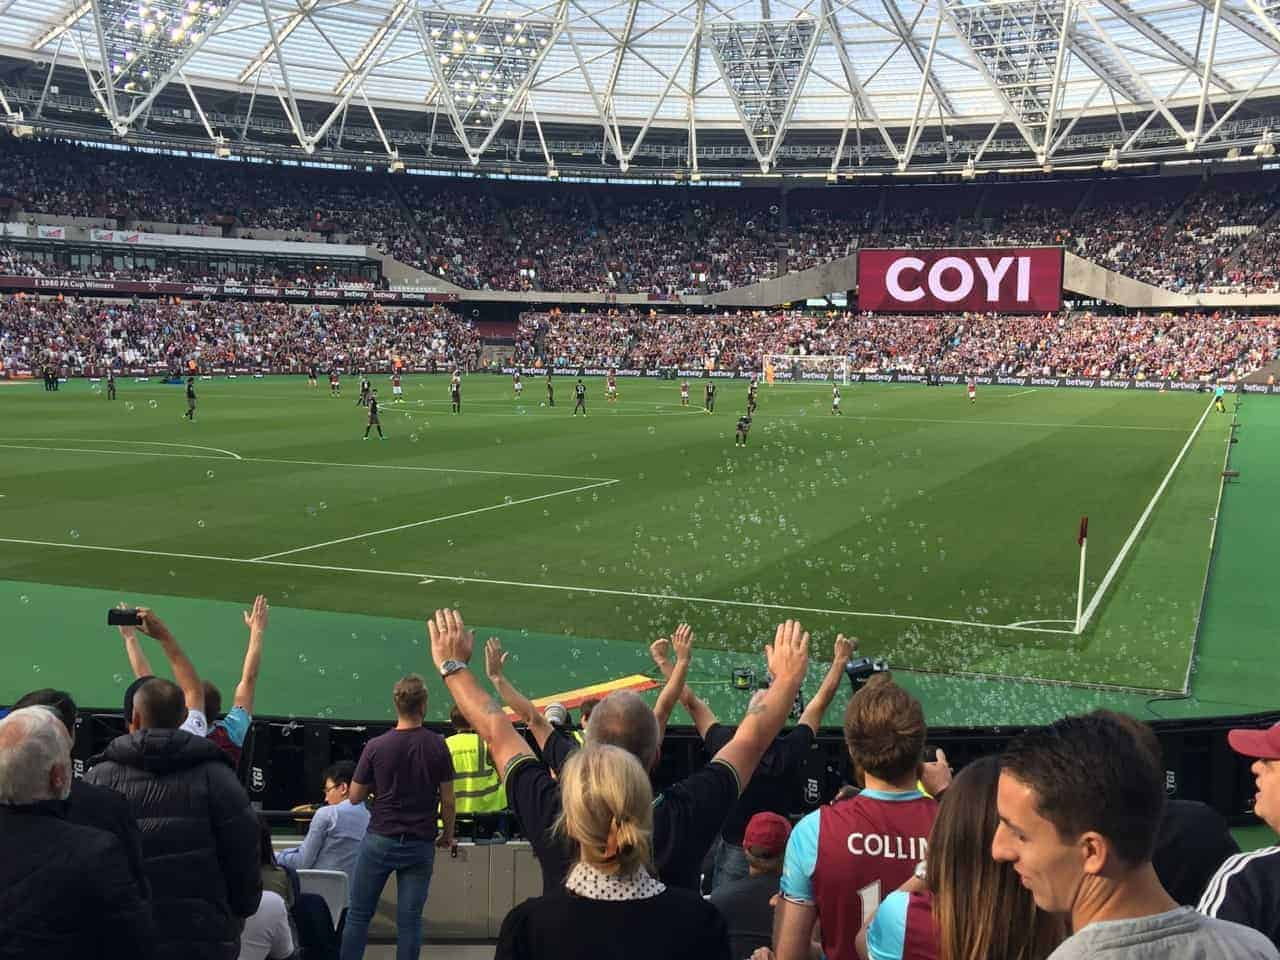 Fans singing and bubbles flying at London Stadium, home of West Ham United FC